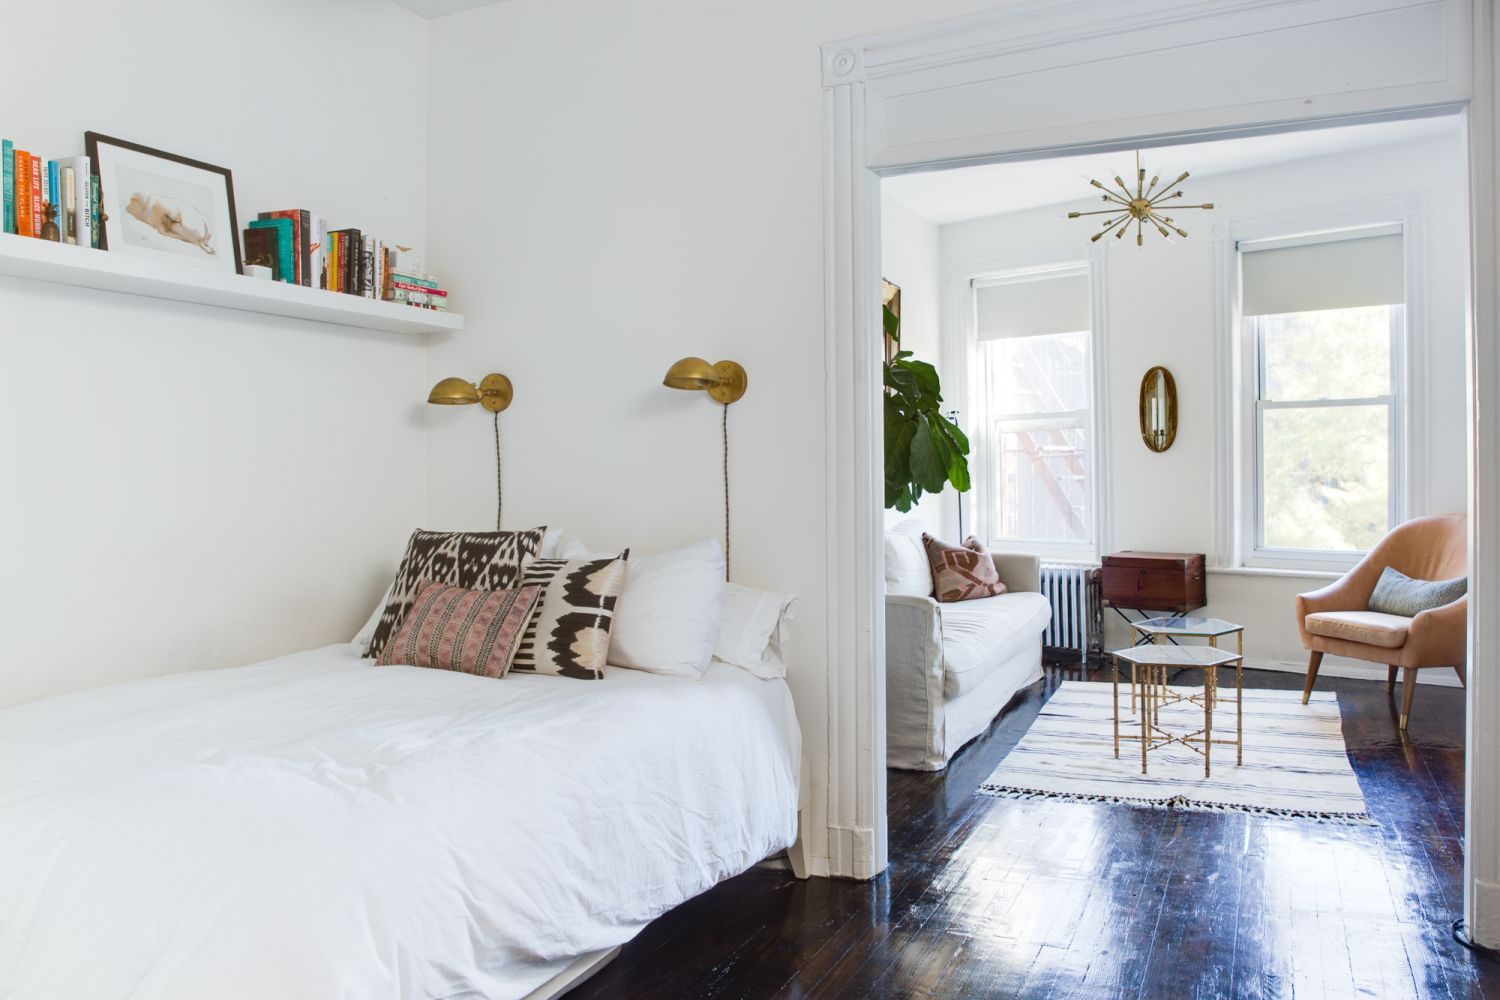 16 of the Best Small Space Hacks for Every Room of Your Home